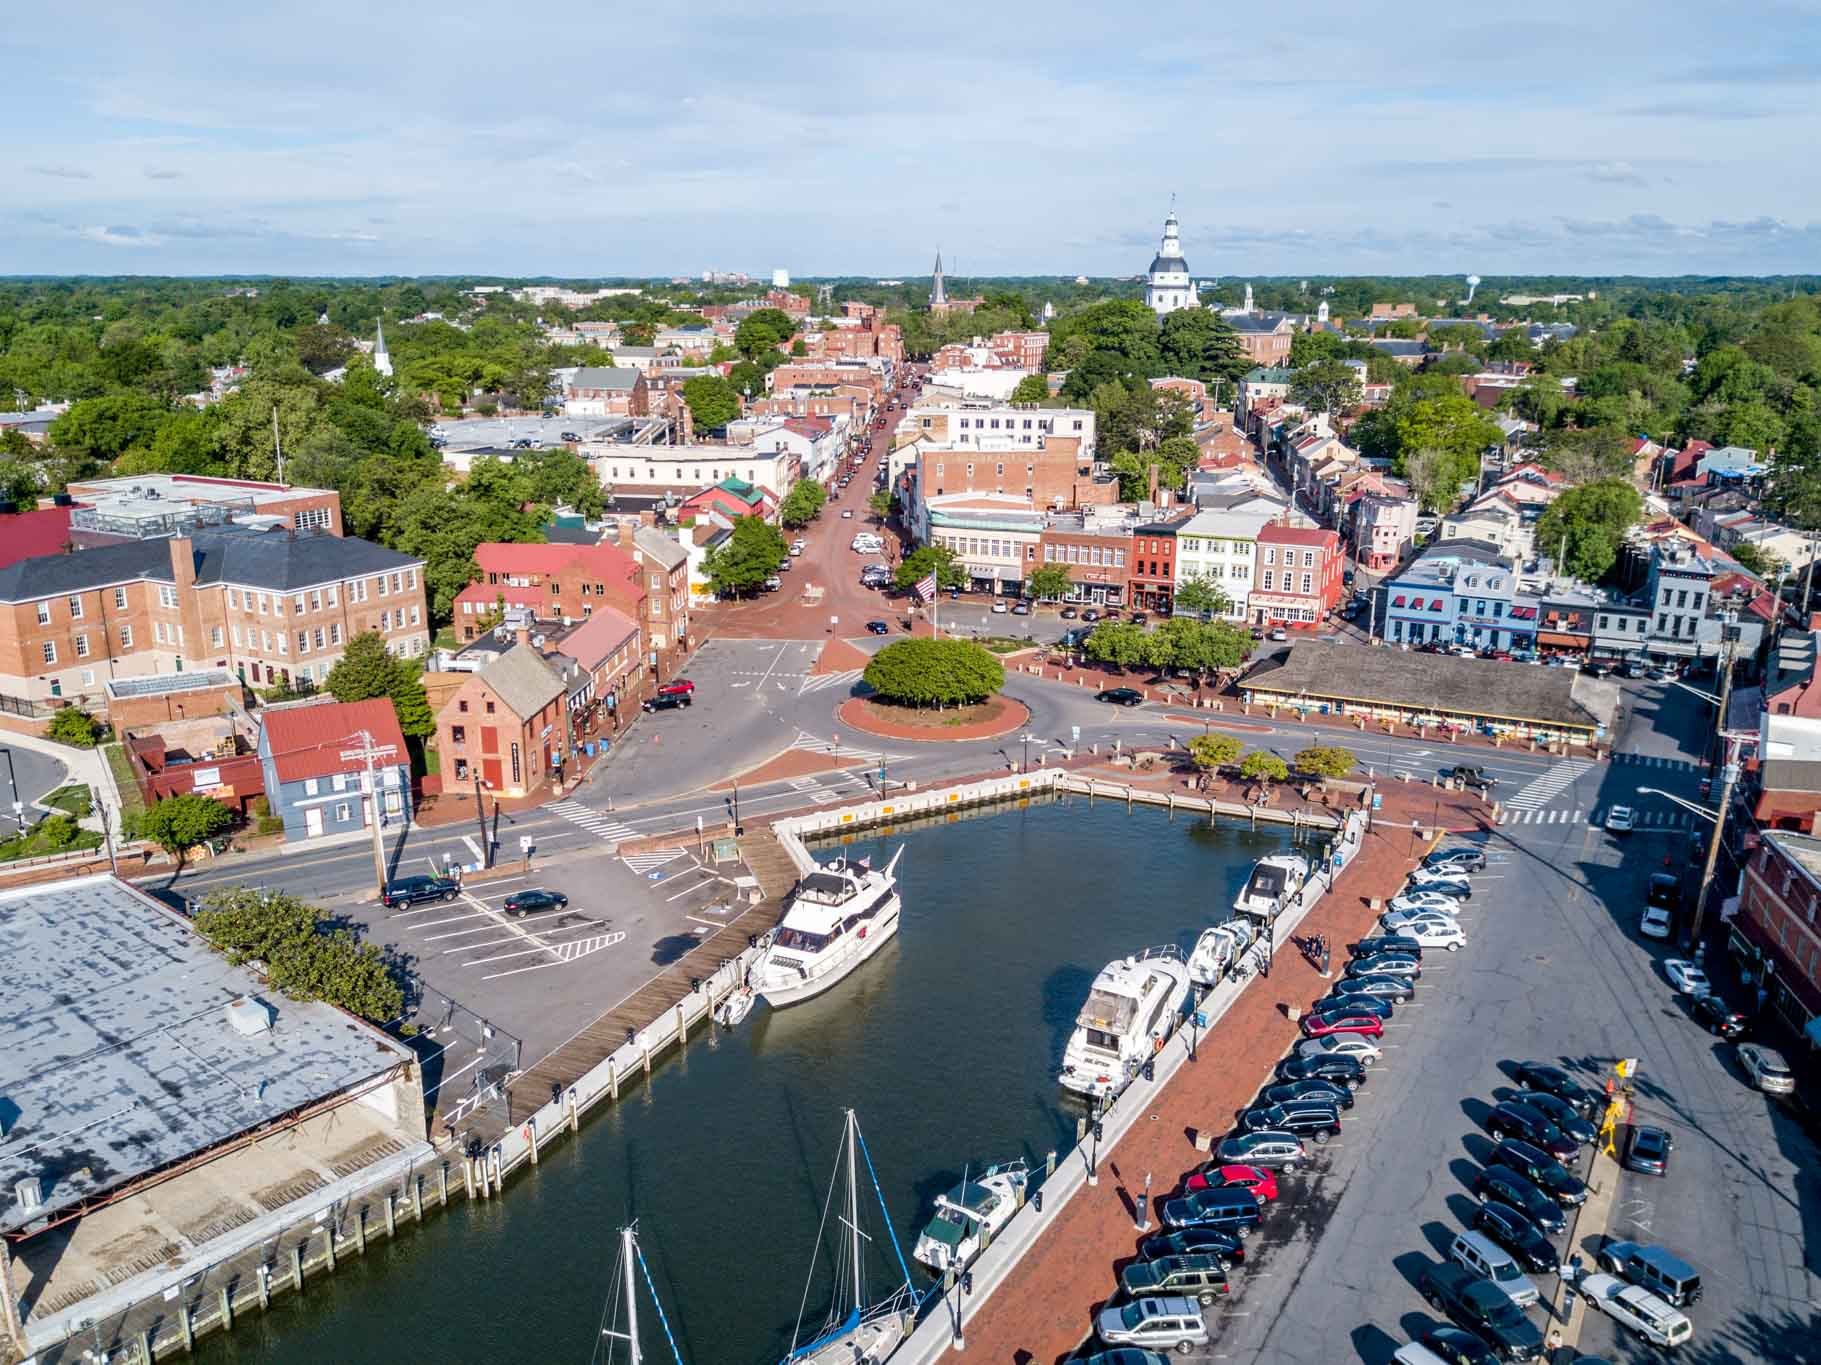 Downtown Annapolis, one of the best weekend getaways in the US